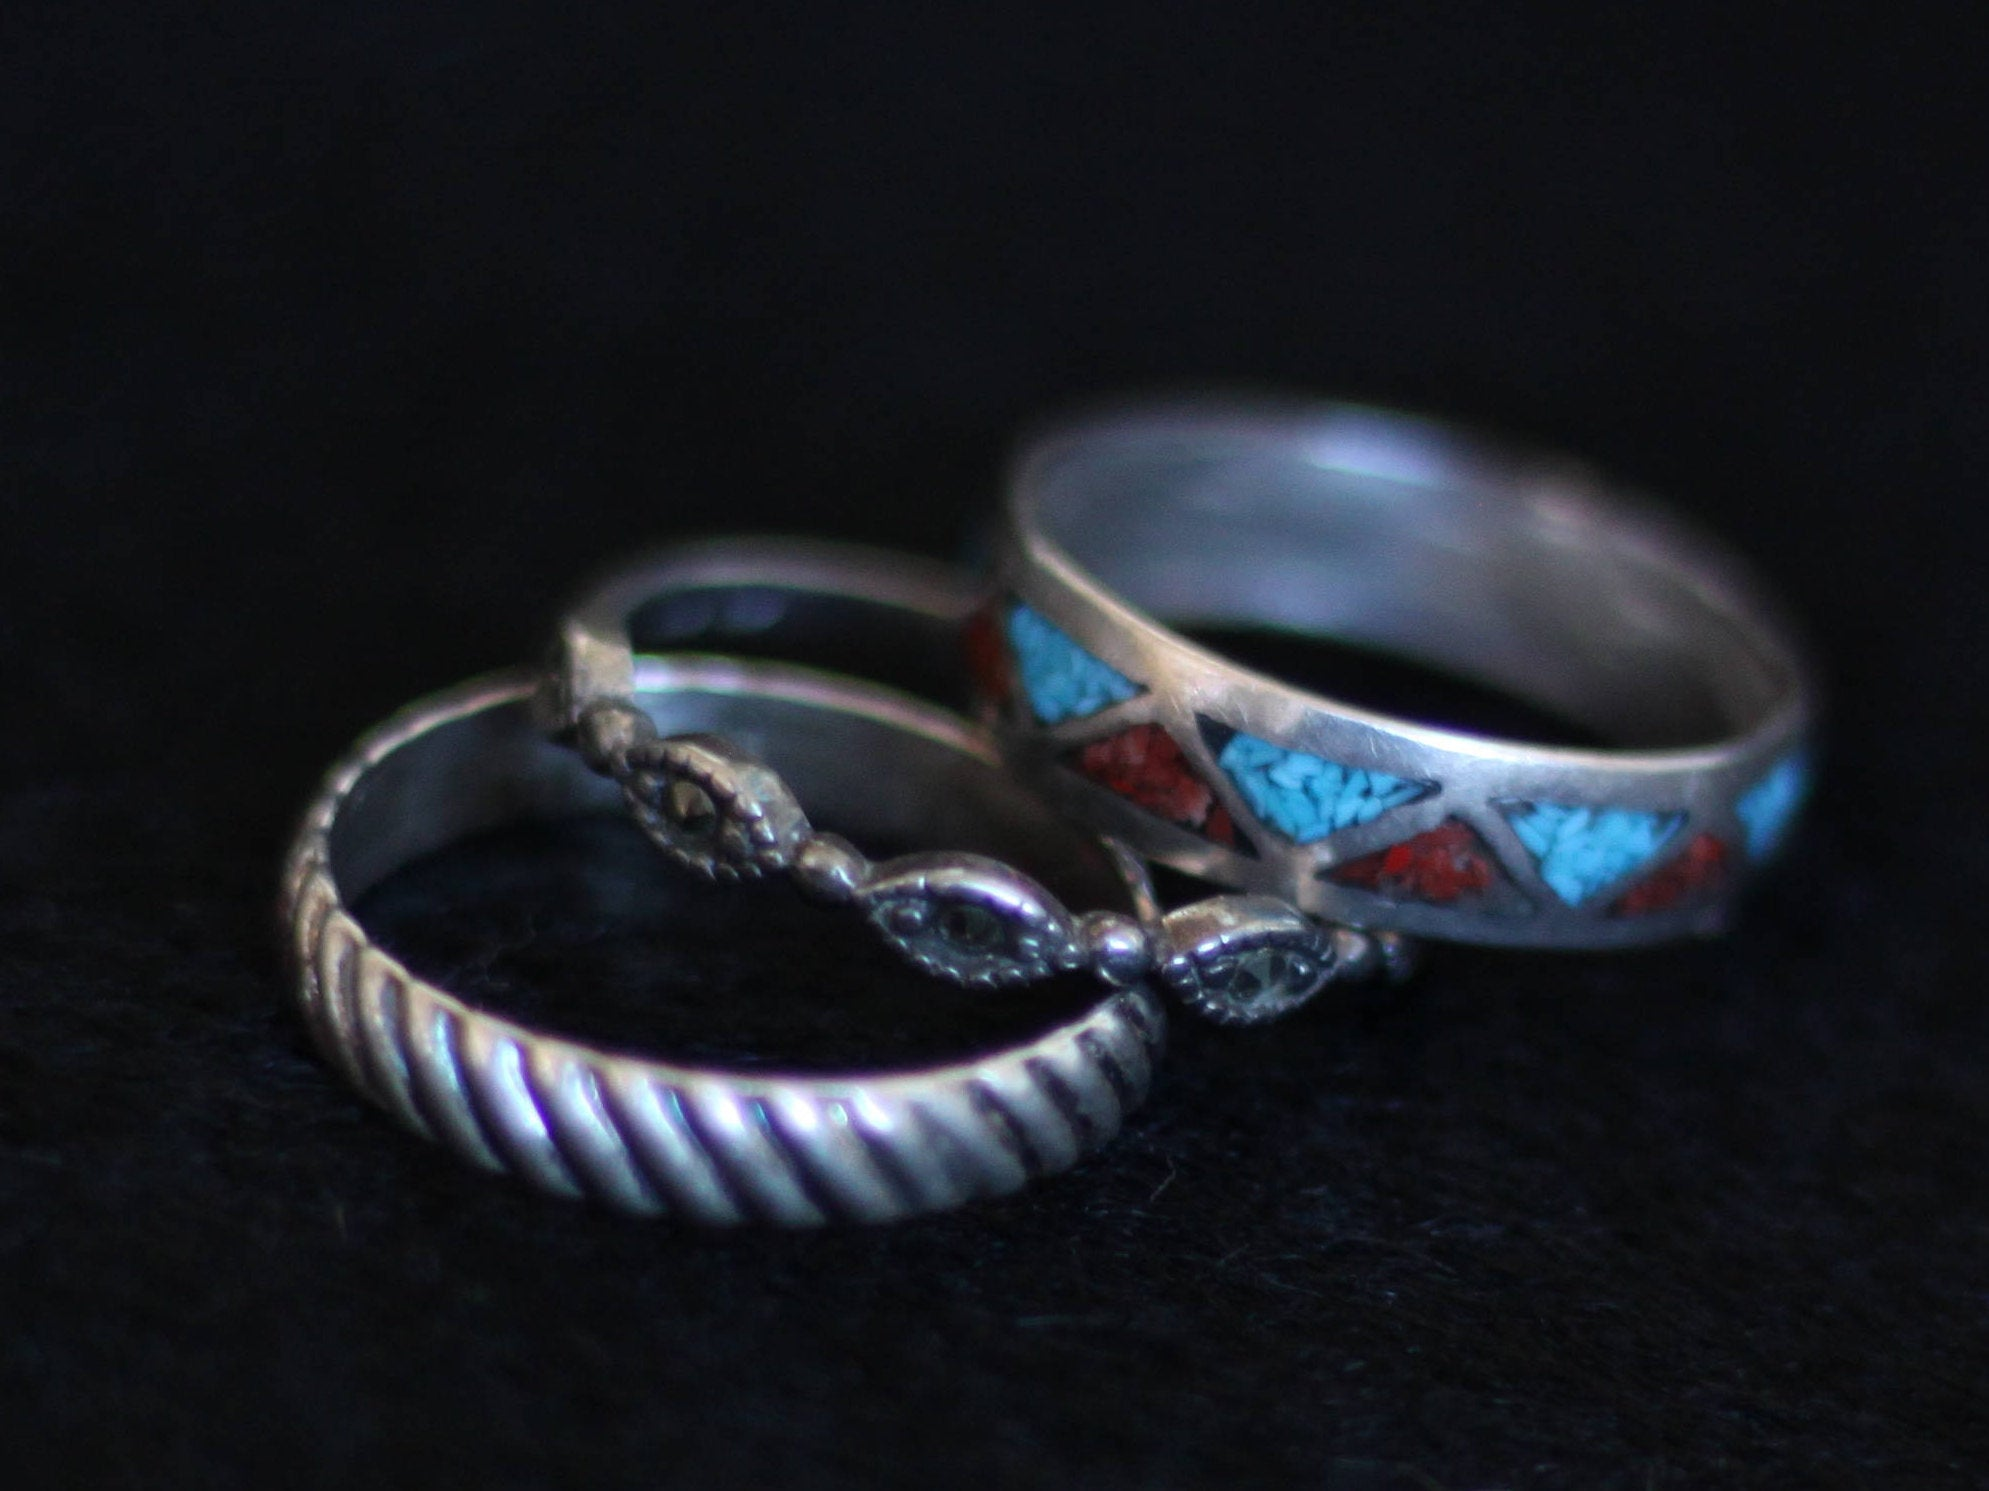 Vintage Sterling Silver Rings - Priced Individually